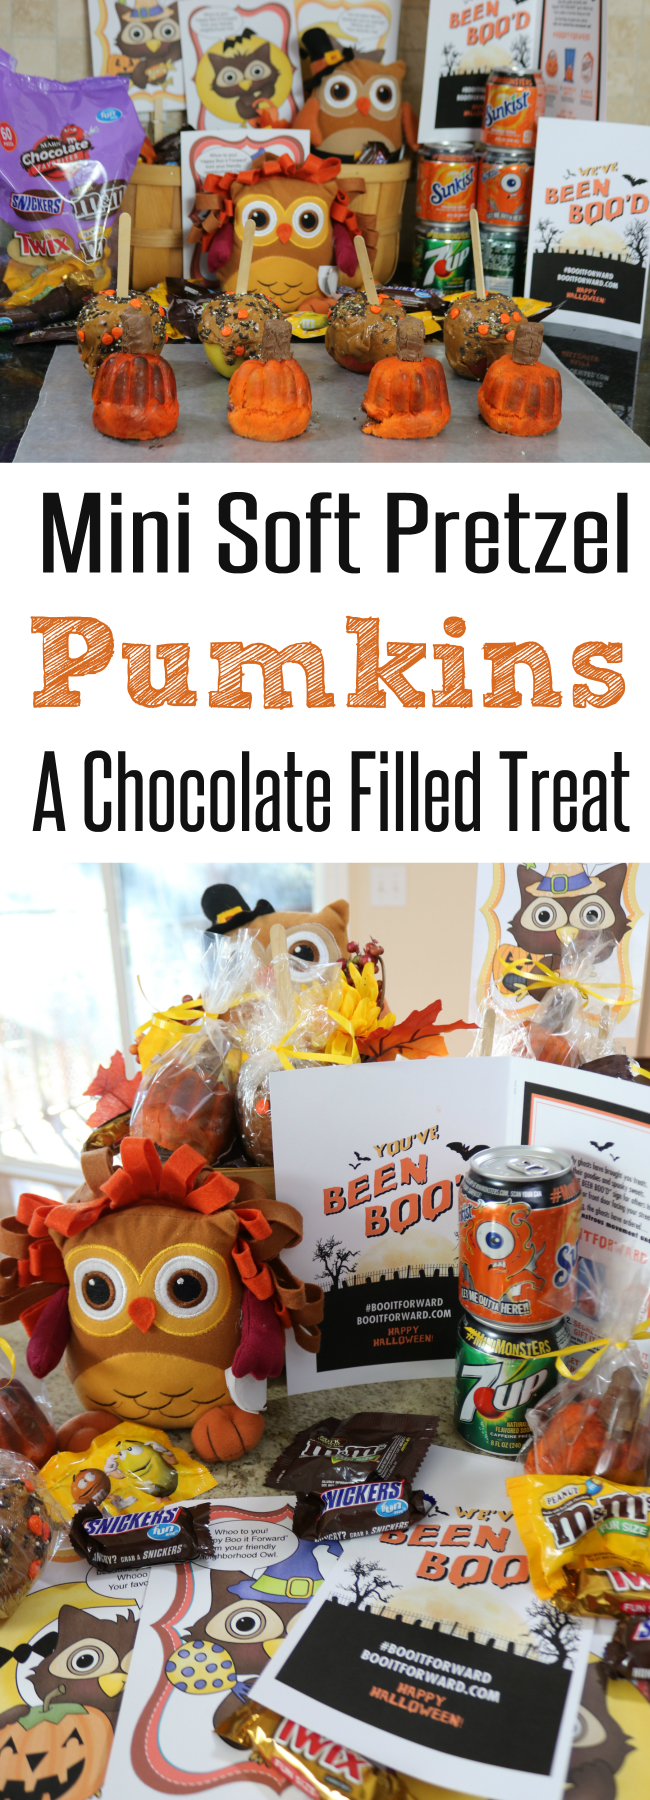 A Fun way to use Halloween Candy Bake some Mini Soft Pretzel Filled Pumkins